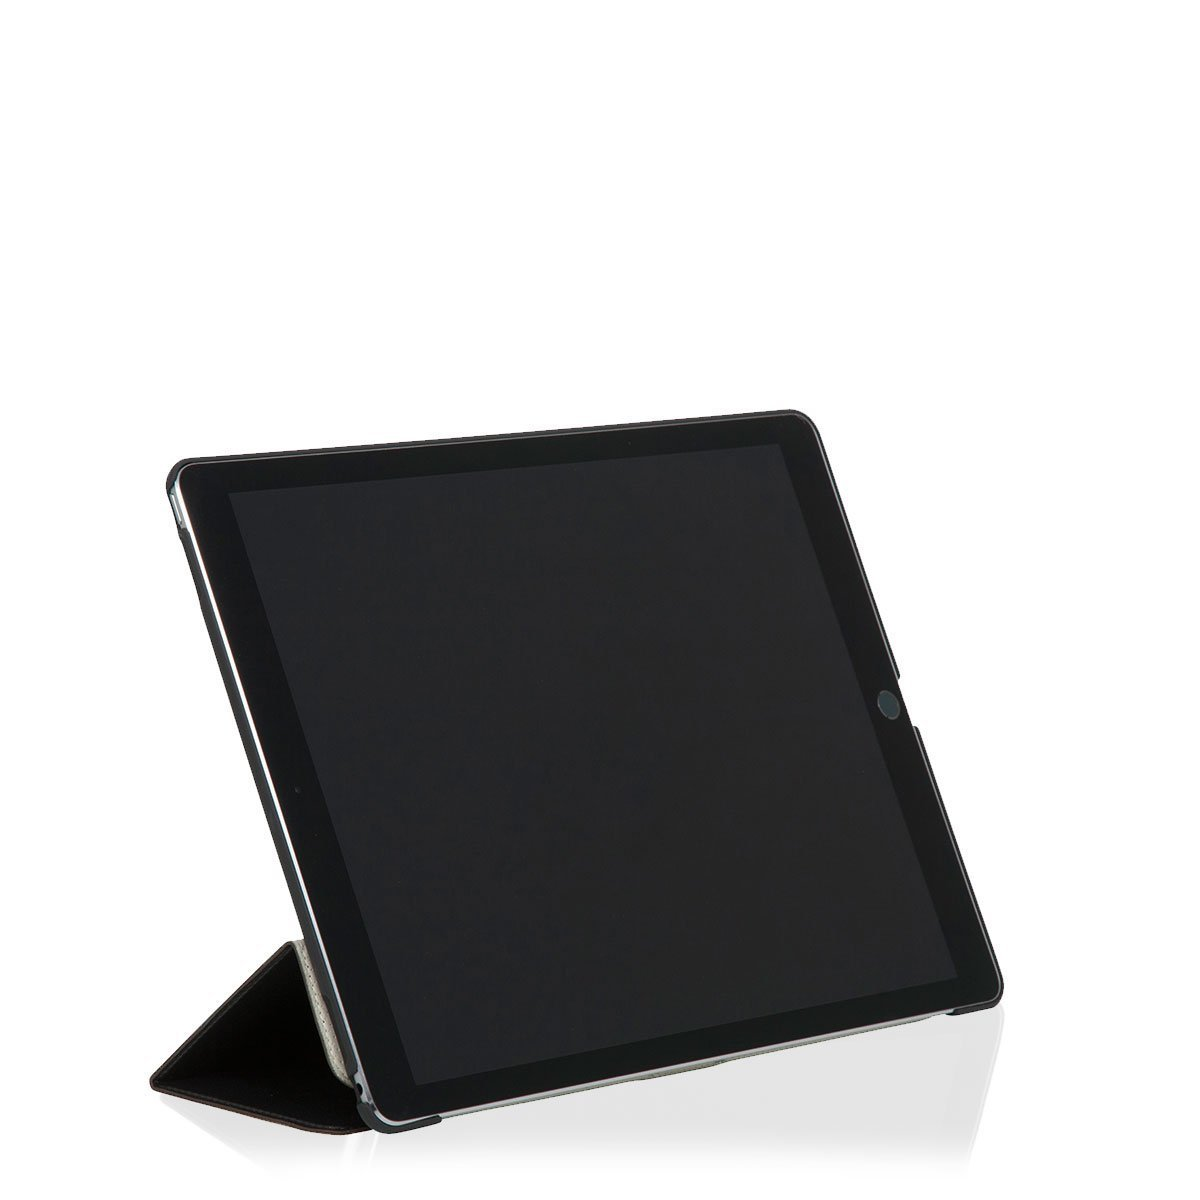 "Leather Tri-fold iPad Folio (2015) - 12.9"" iPad Pro (2015 release) - 12.9"" -  Black 